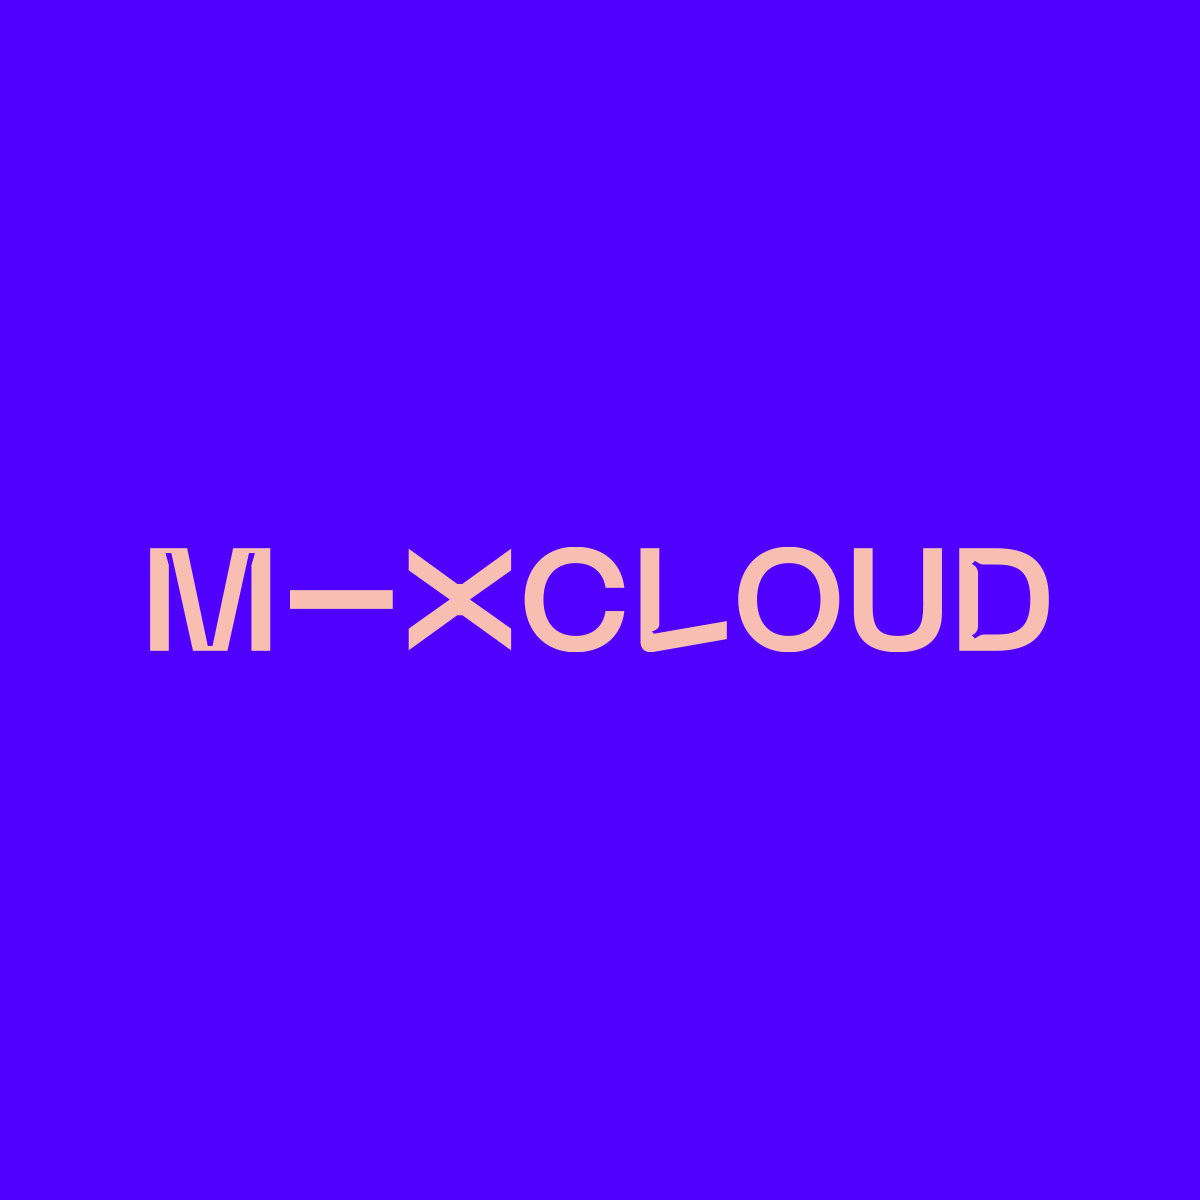 Studio Output Designs New Brand Identity for Mixcloud